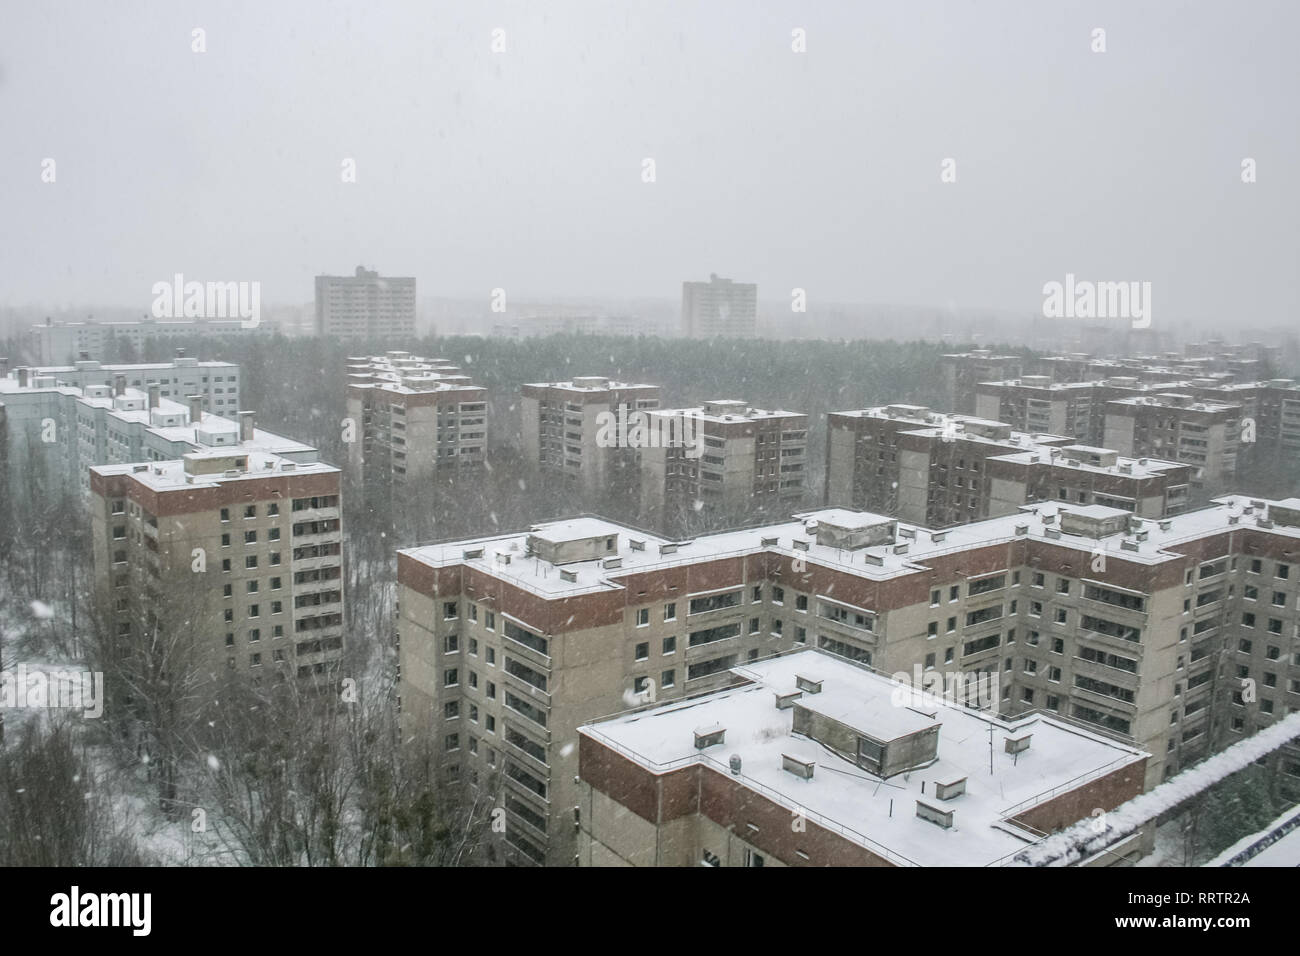 Pripyat, the exclusion zone of the Chernobyl disaster. - Stock Image